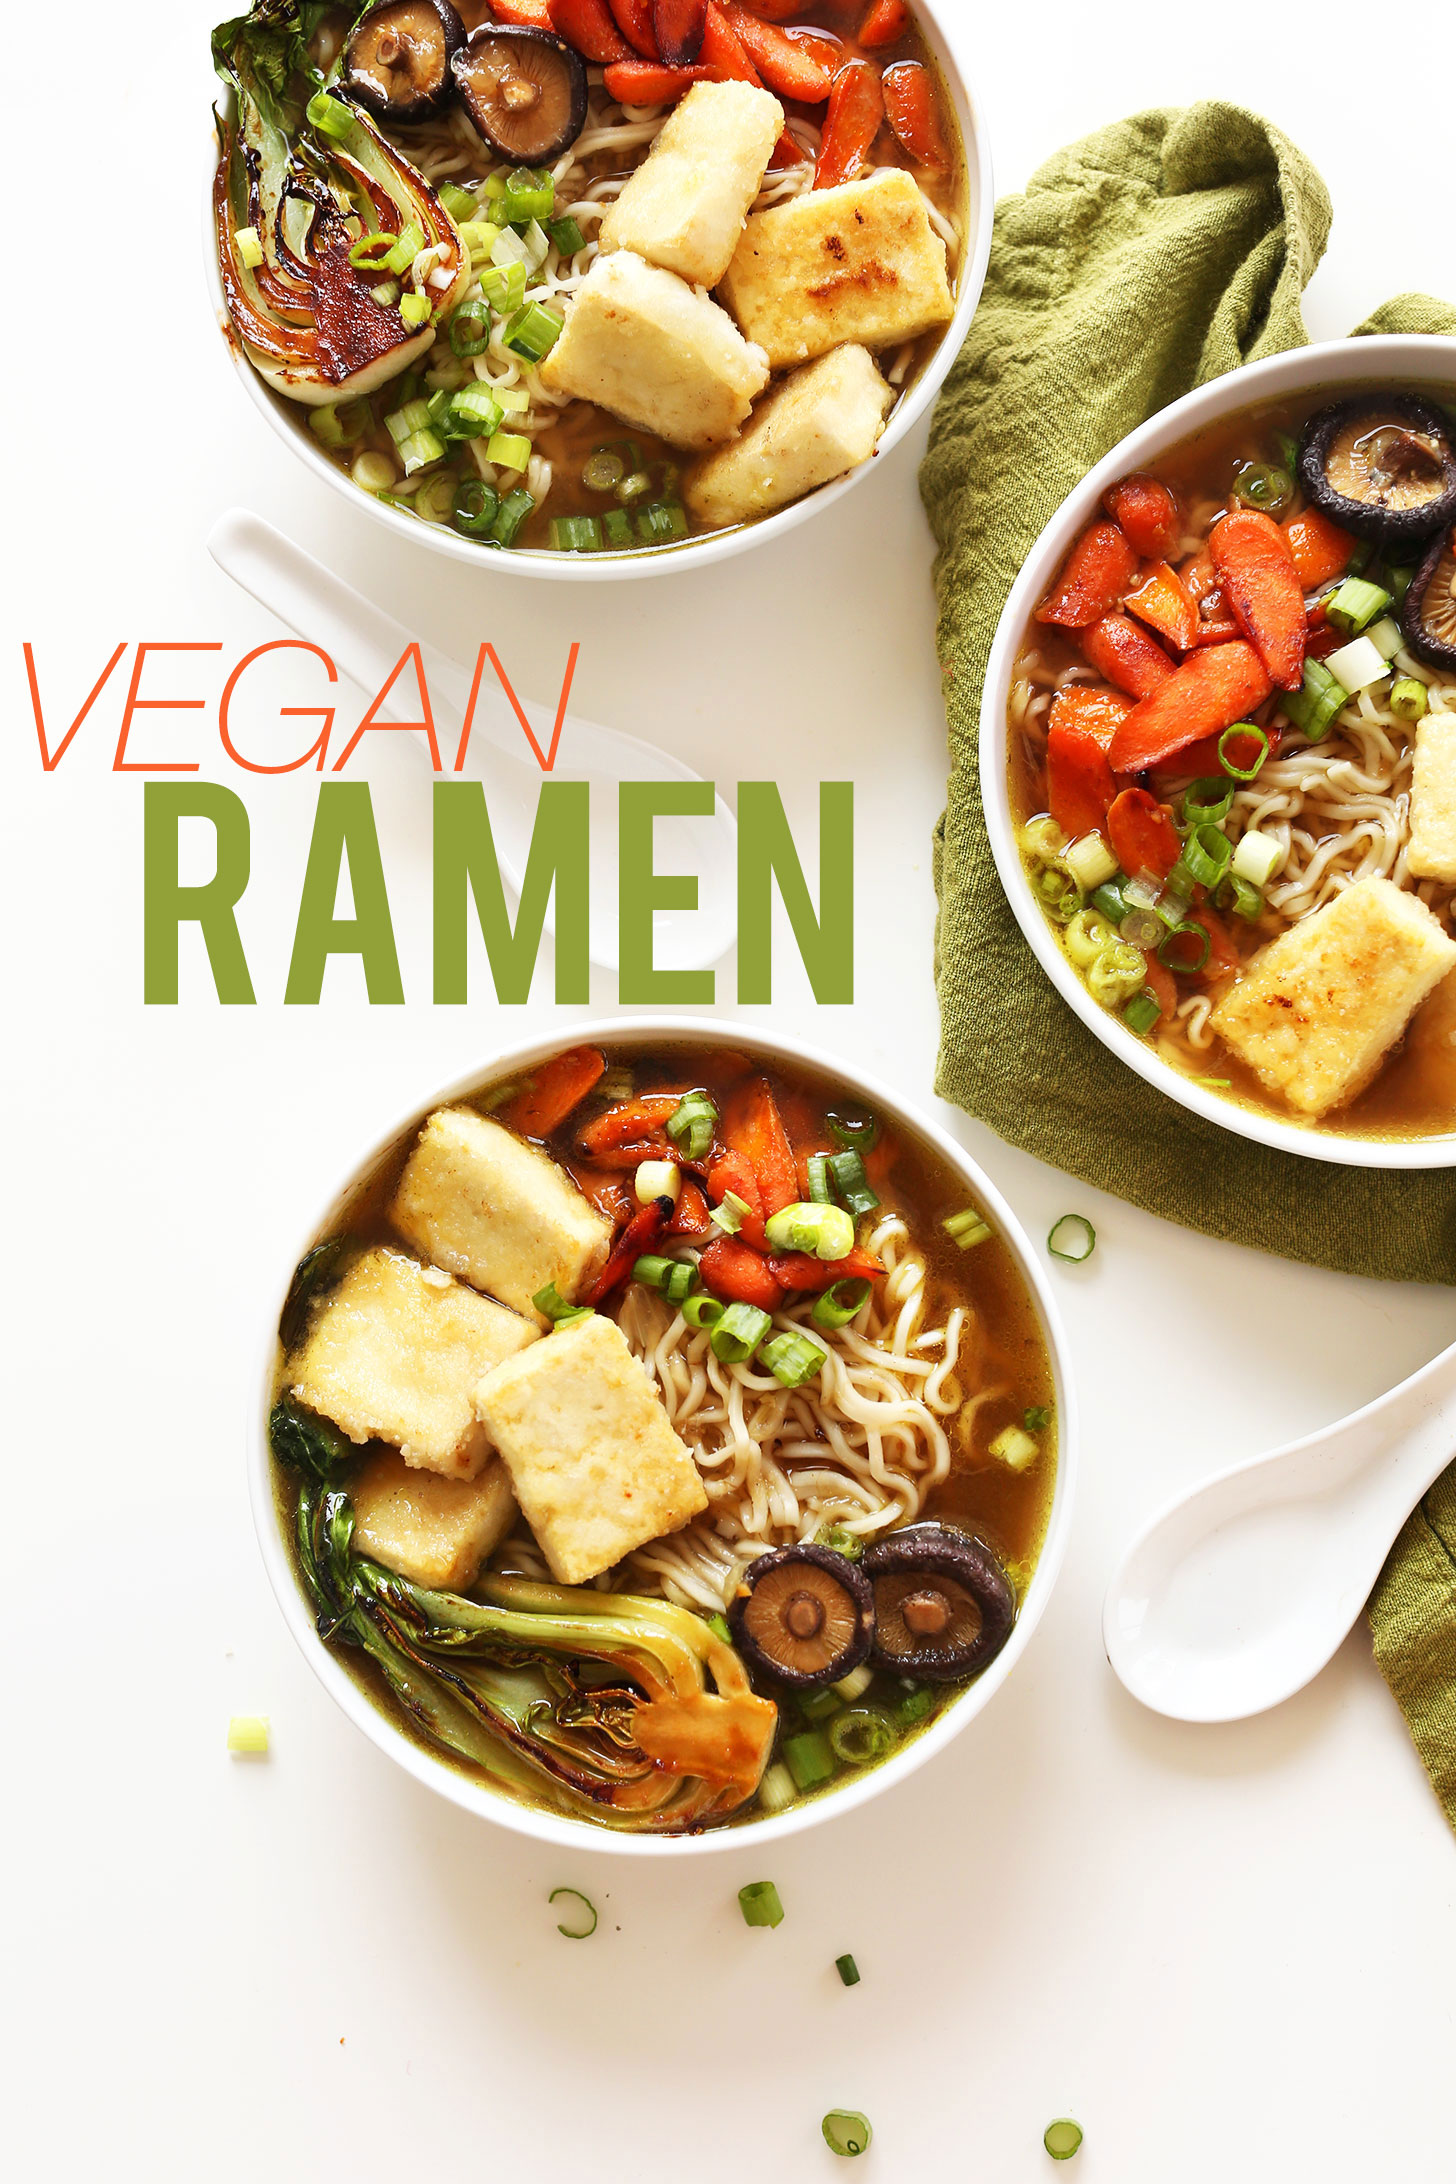 Bowls of our vegan ramen recipe for a warming plant-based dinner